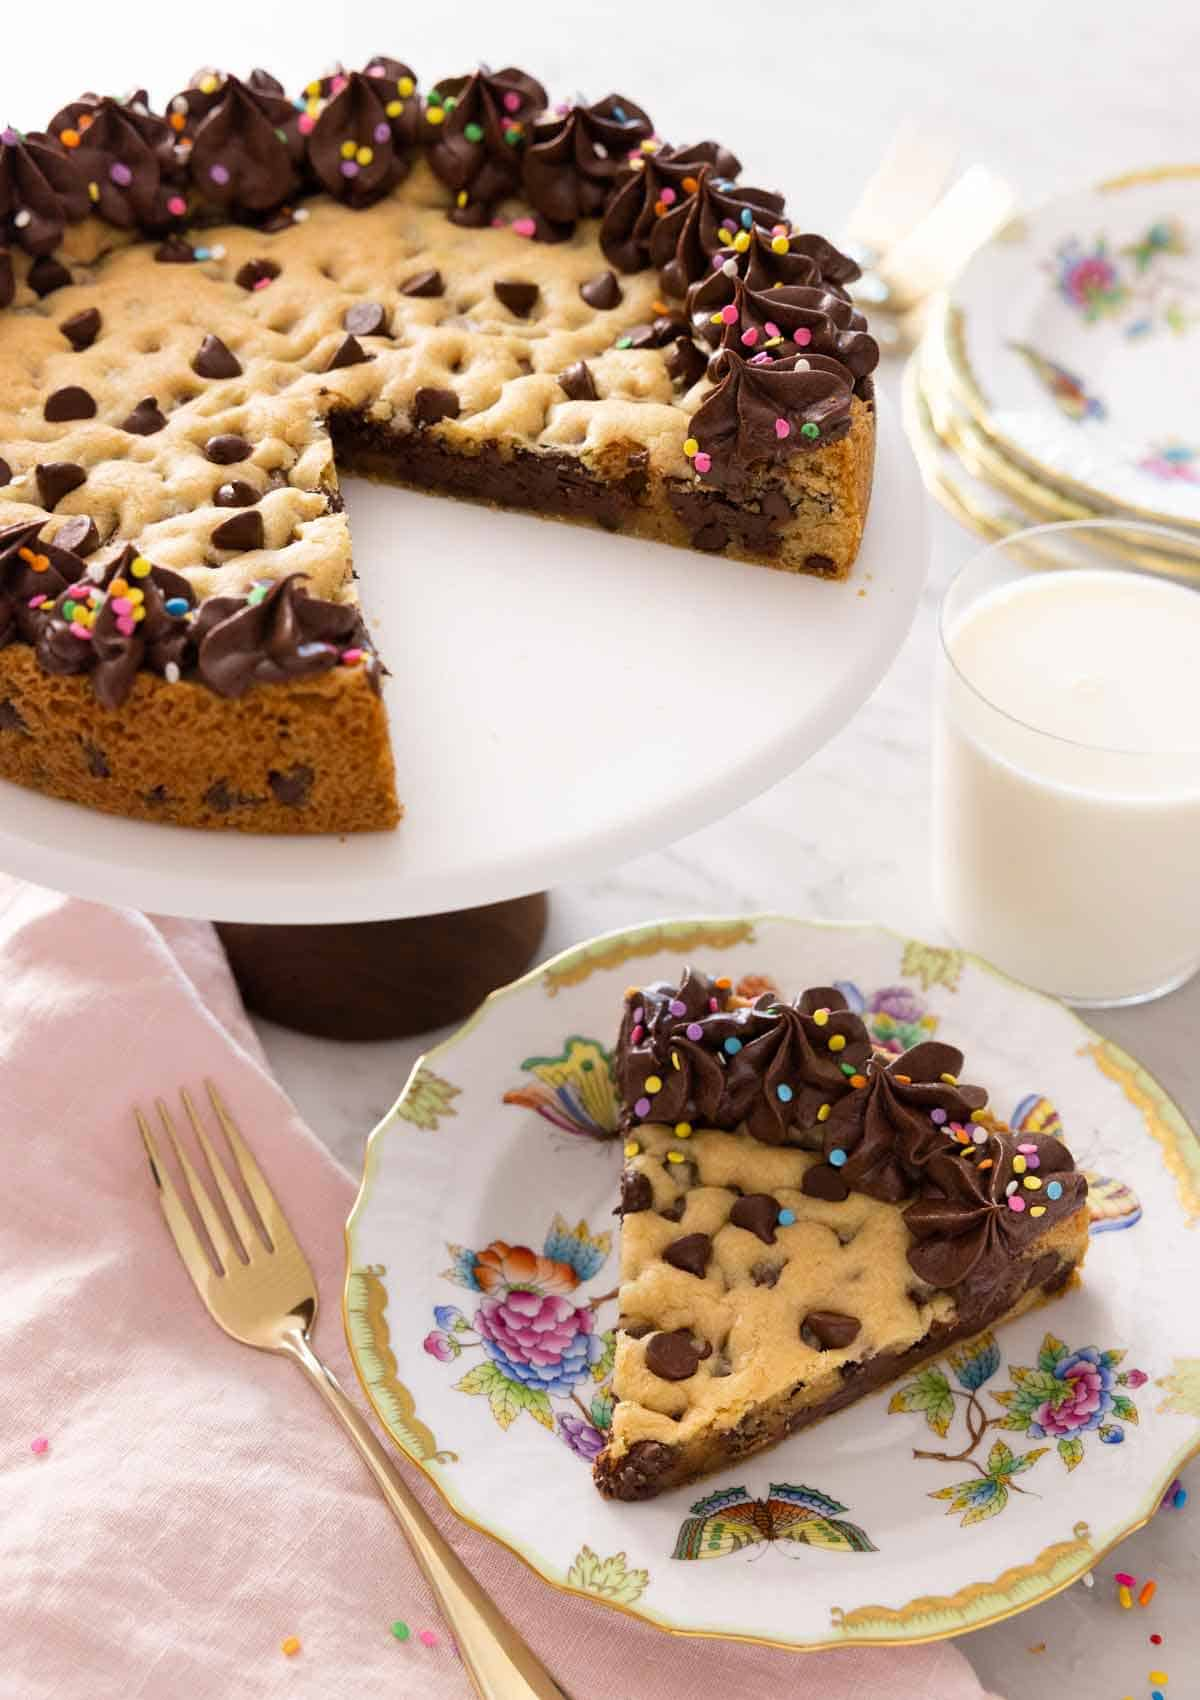 A cake stand with a cookie cake with a slice removed and placed on a plate.